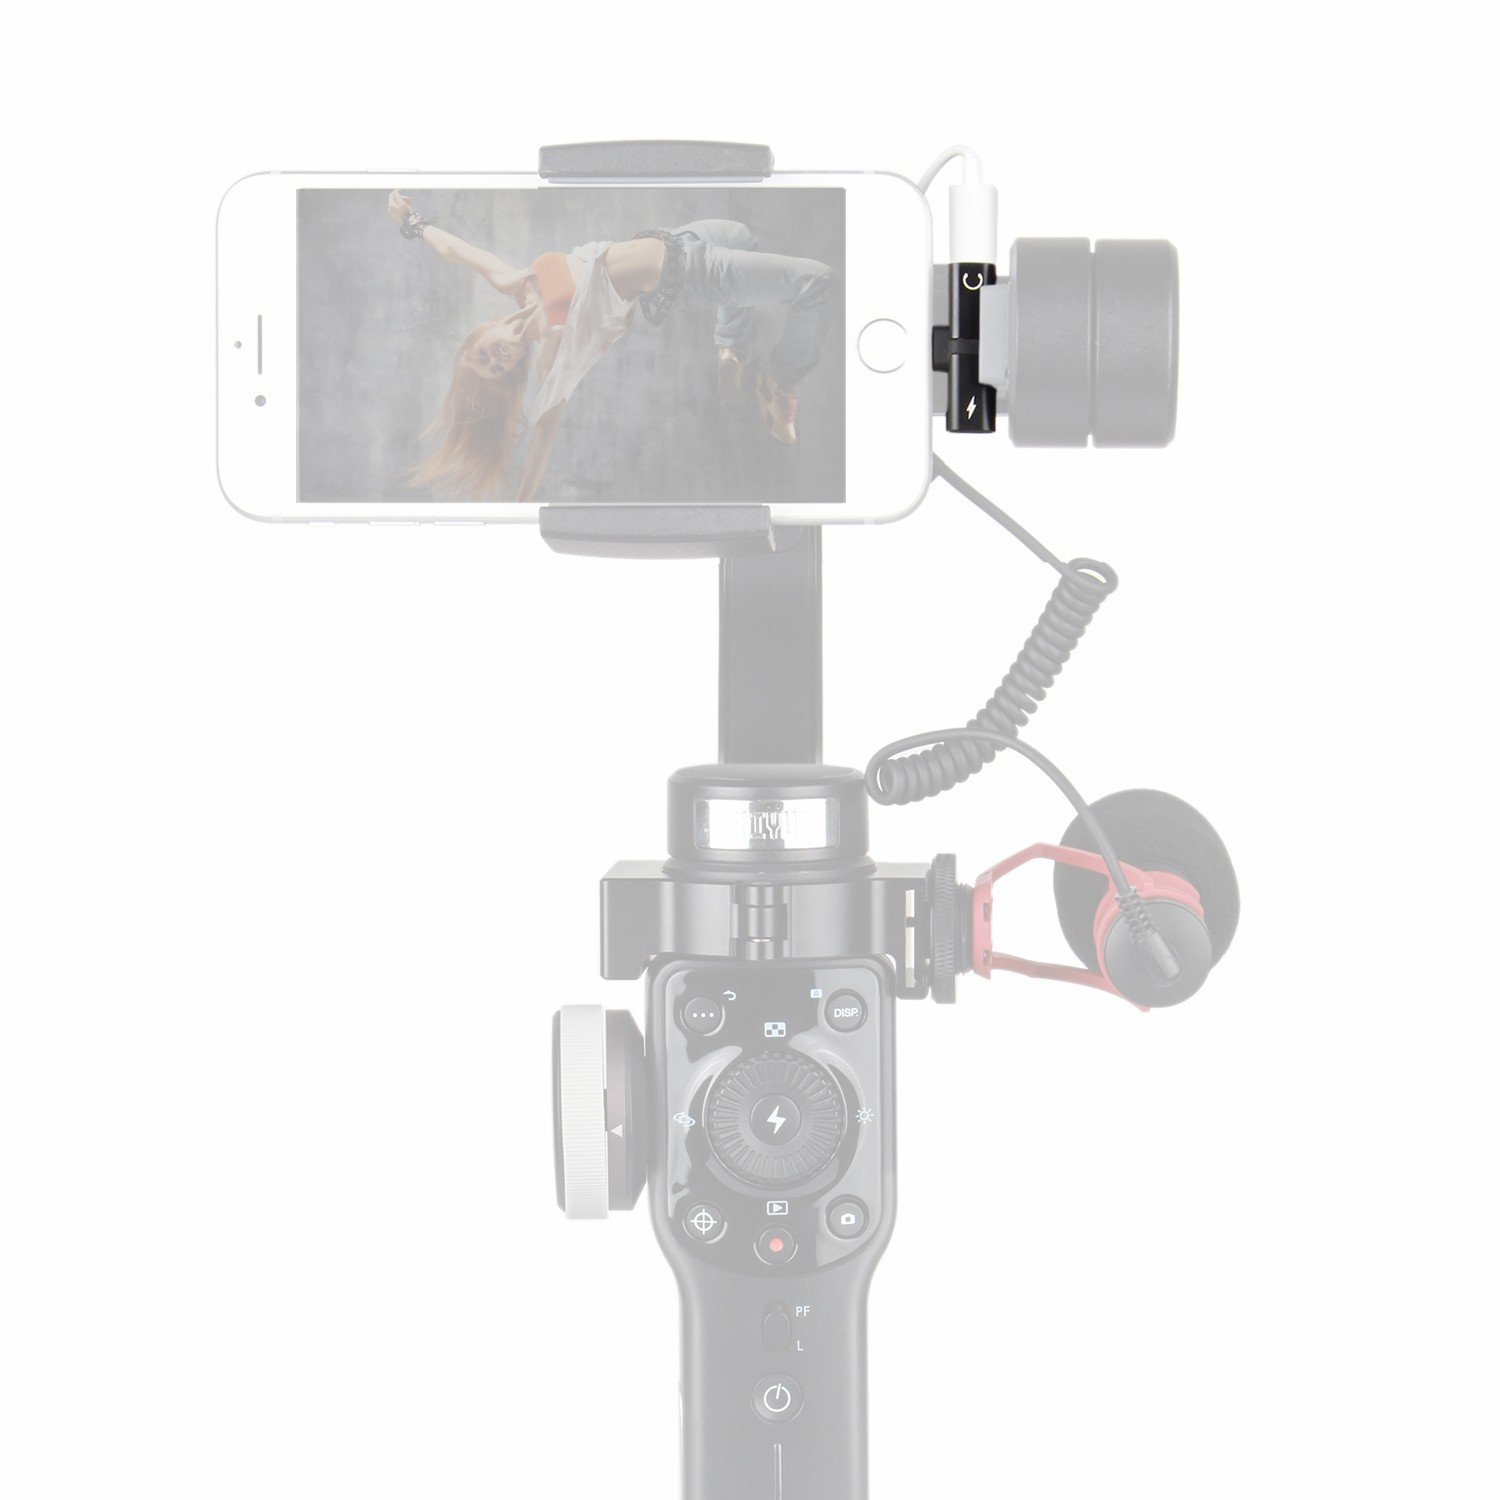 HolaFoto 2in1 Adapter, Charge & Earpod Audio Adapter Attach Microphone to Gimbal Such As Zhiyun Smooth Q/4 3 DJI Osmo Mobile 2 Feiyu SPG for iPhone Xs X/ 8/8 Plus 7/7 Plus/ 6/6 Plus